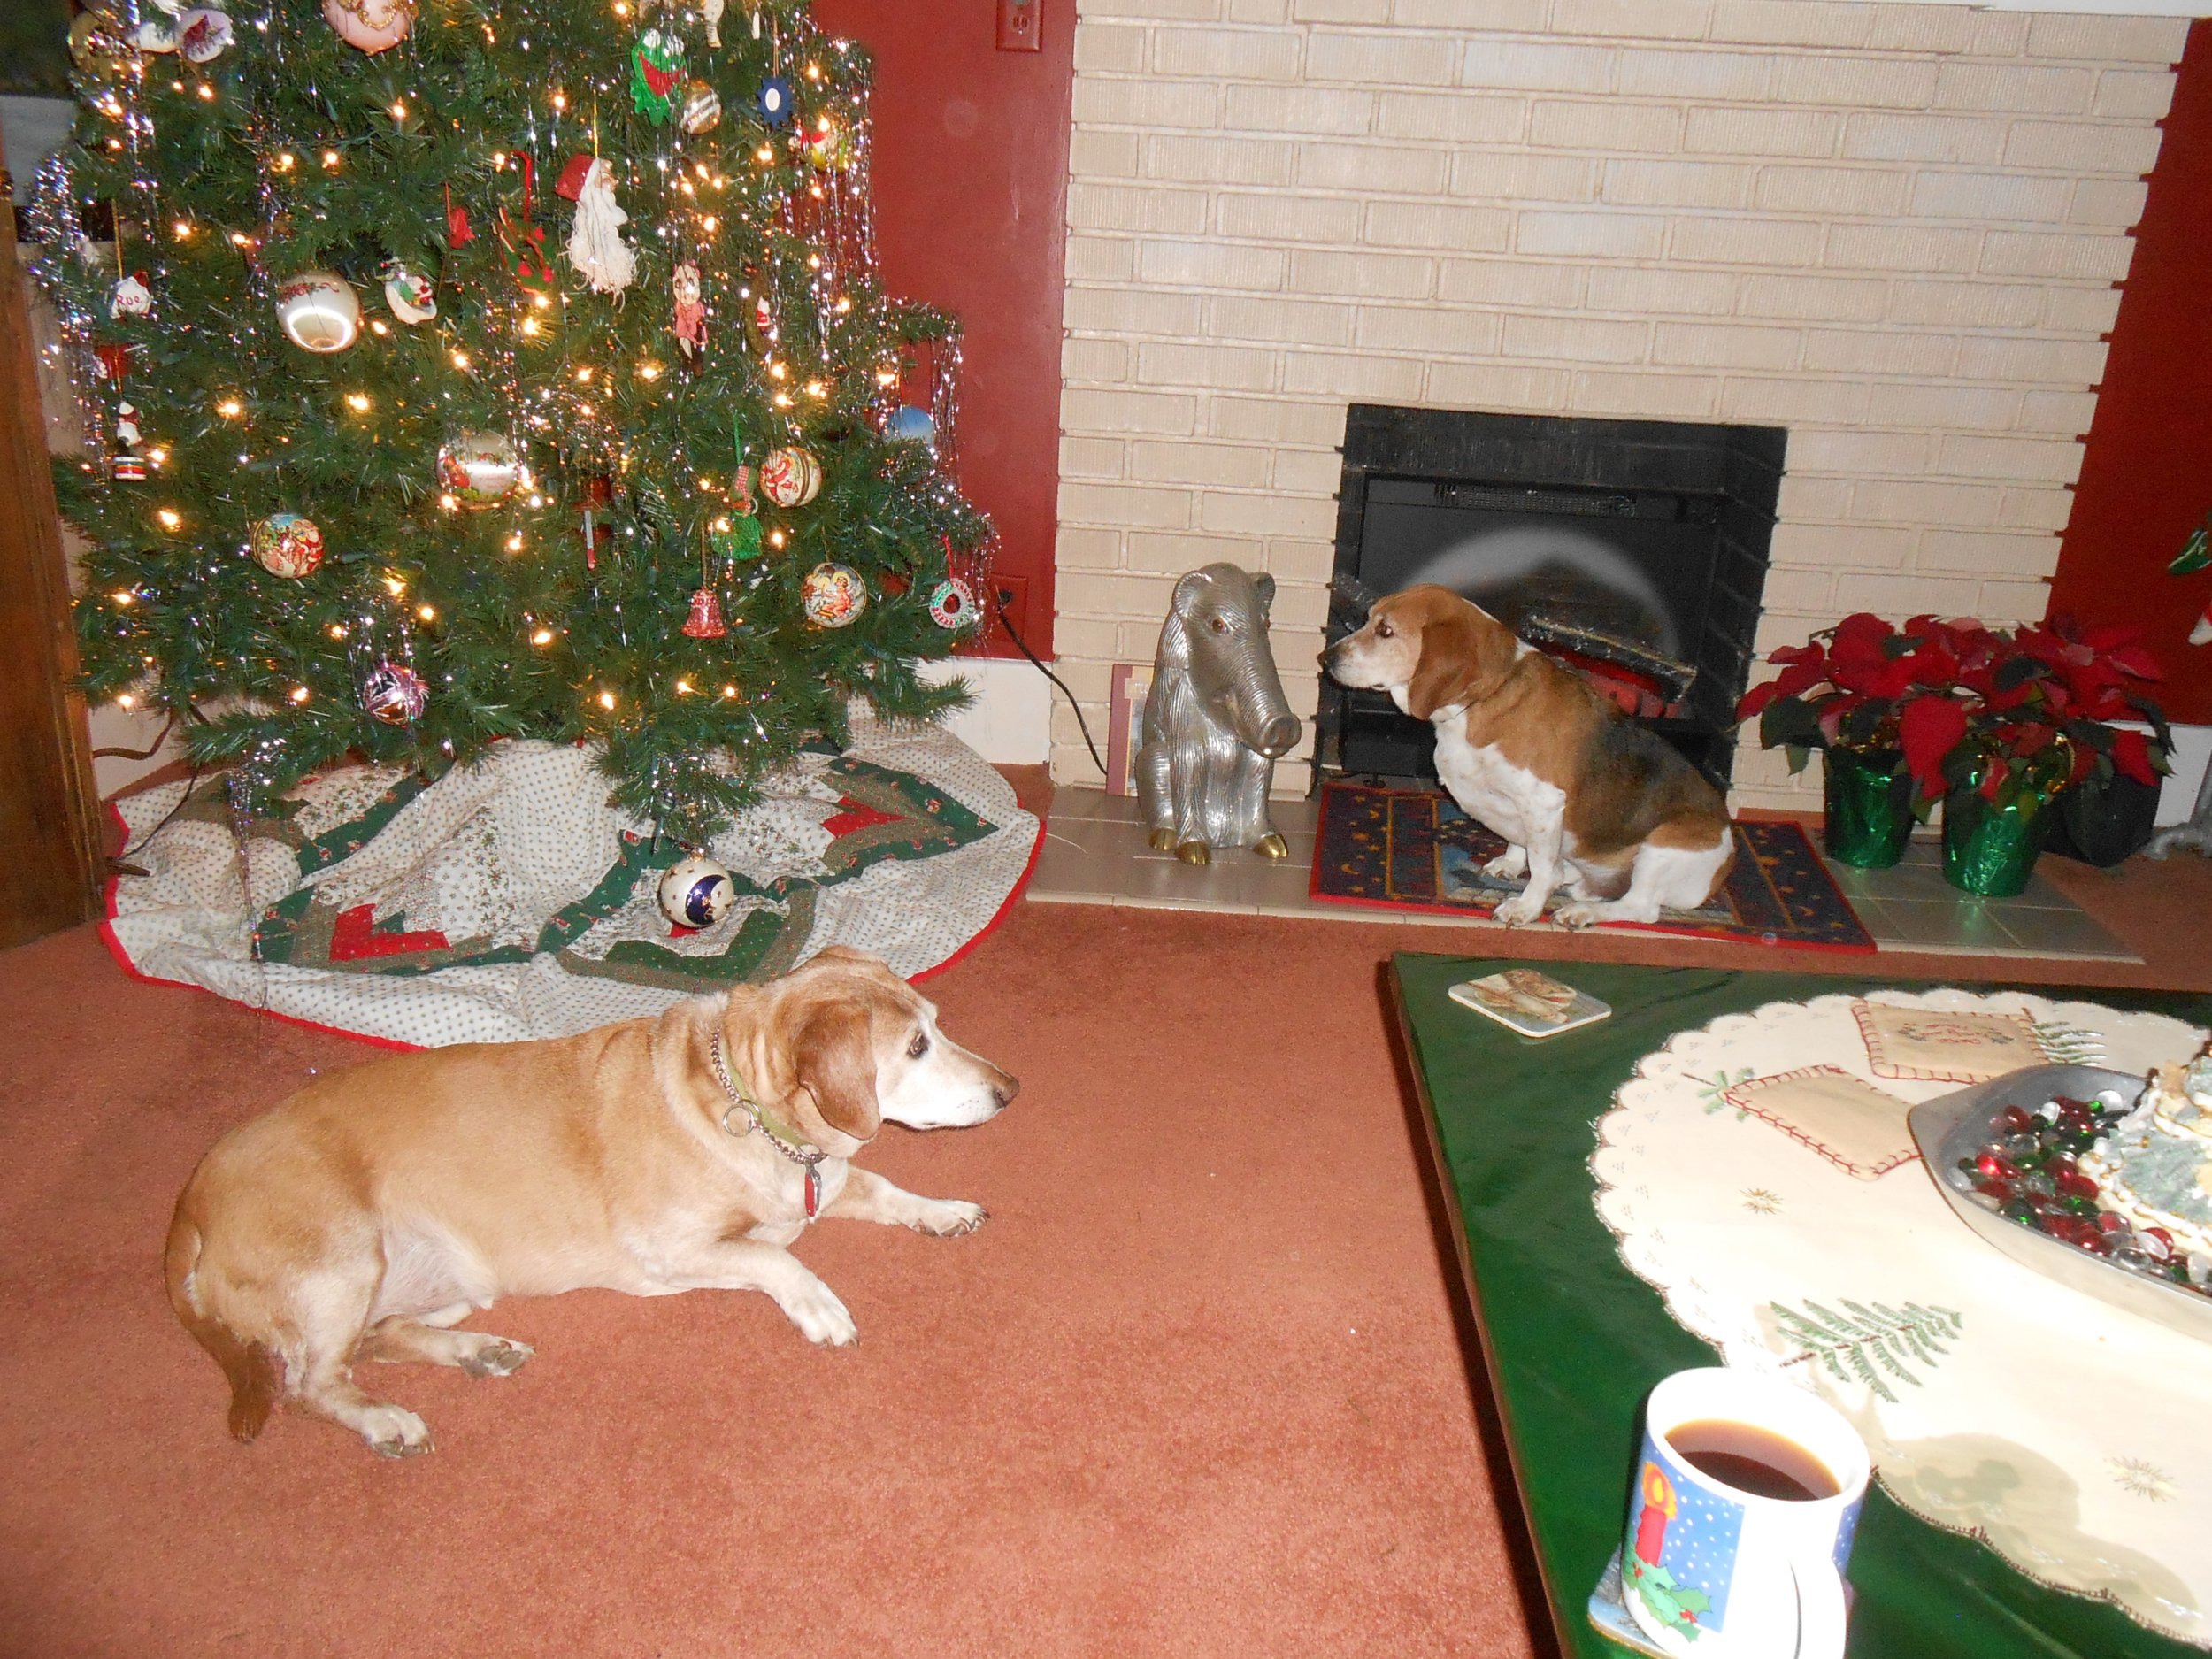 These are Samwise (RIP) and Chester (RIP). Christmas is not the same without them.